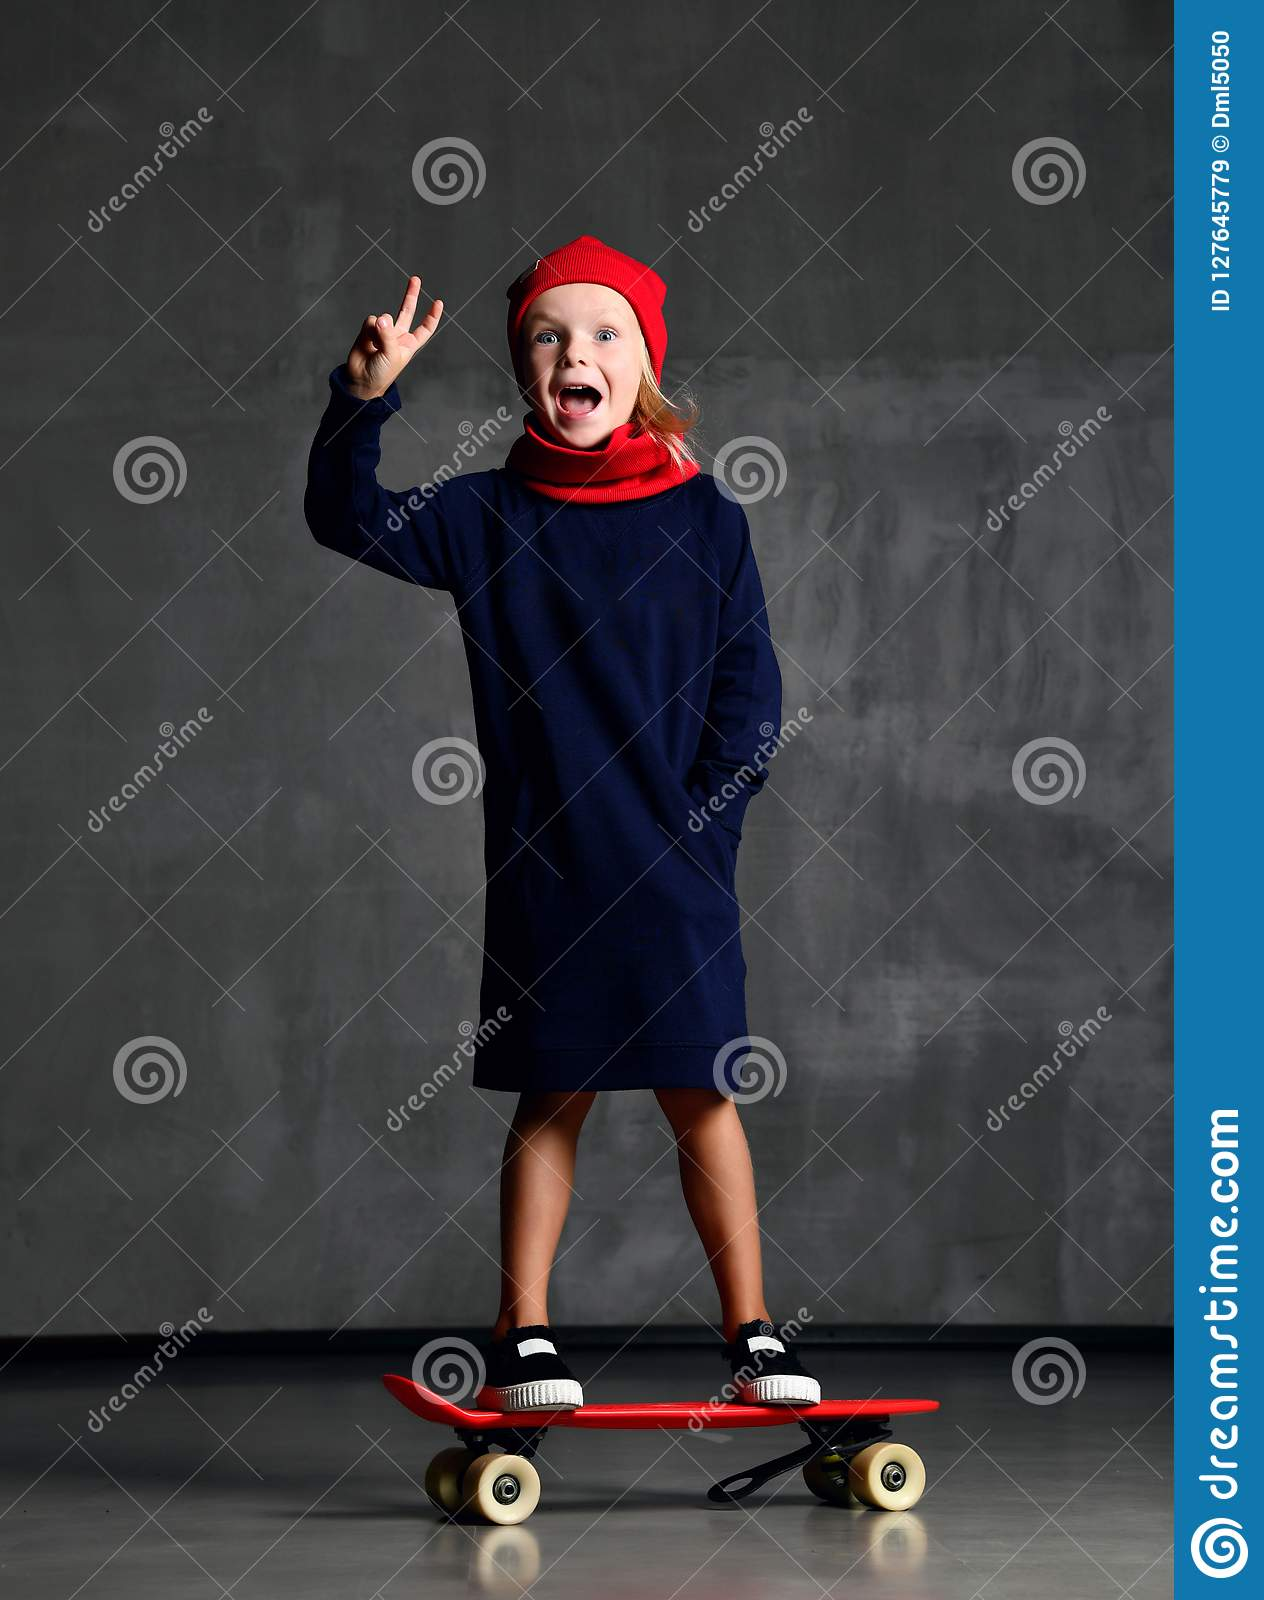 Young girl kid standing on skateboard in blue coat and red scarf and har showing peace sign screaming